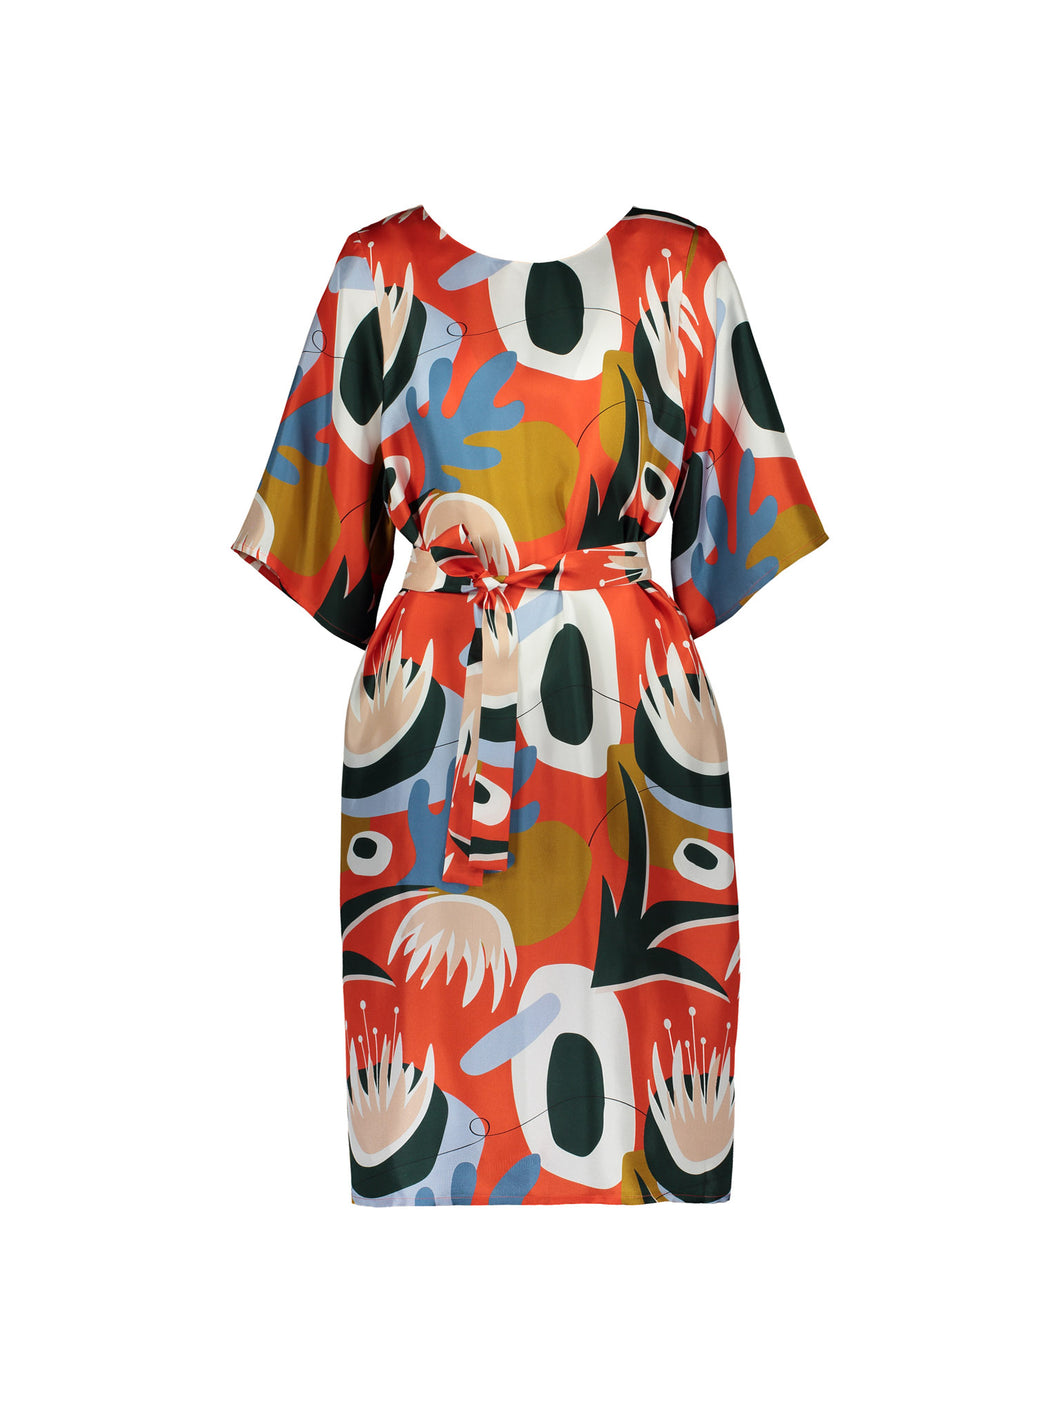 Delight Dress, Kyoto Red